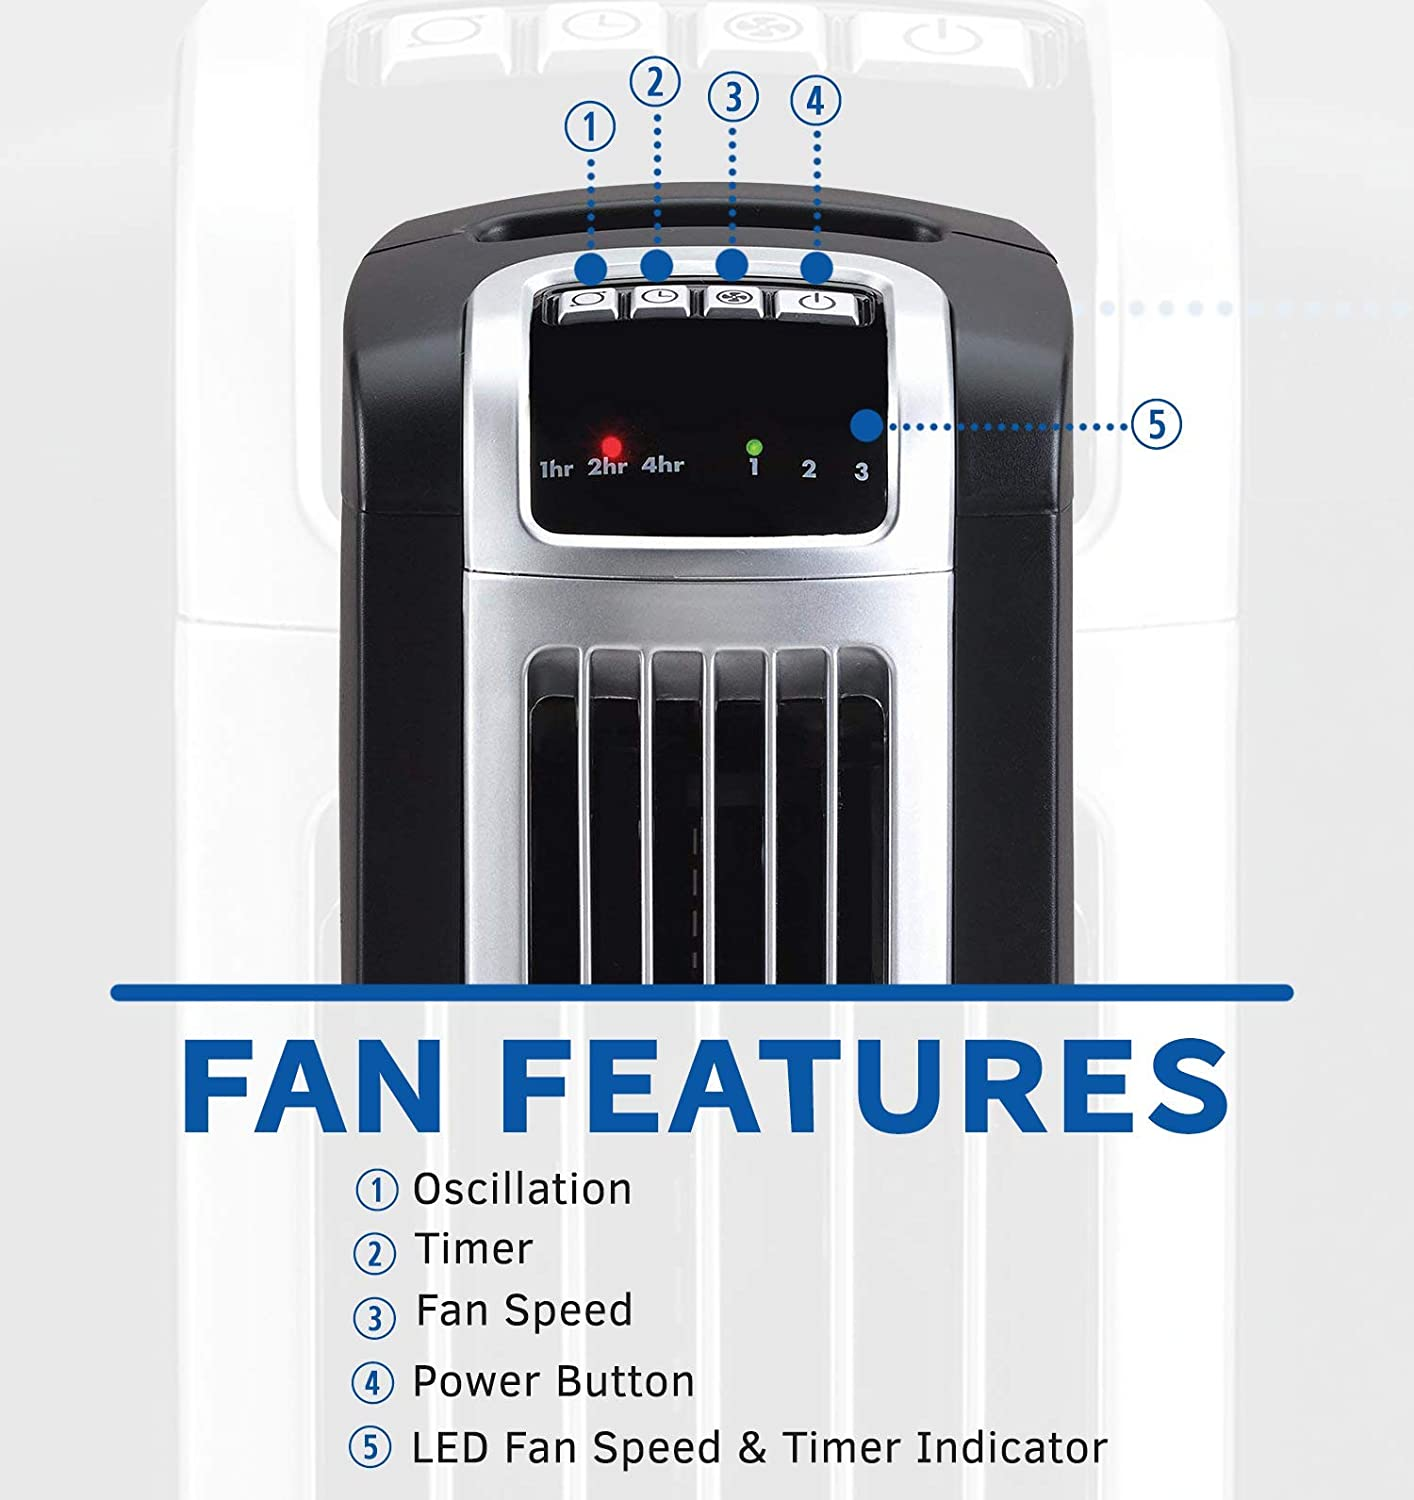 Lasko 2511 36 Tower Fan With Remote Control Features We Followed The Directions That Came Controller And 3 Whisper Quiet Speeds Built In Timer Home Kitchen